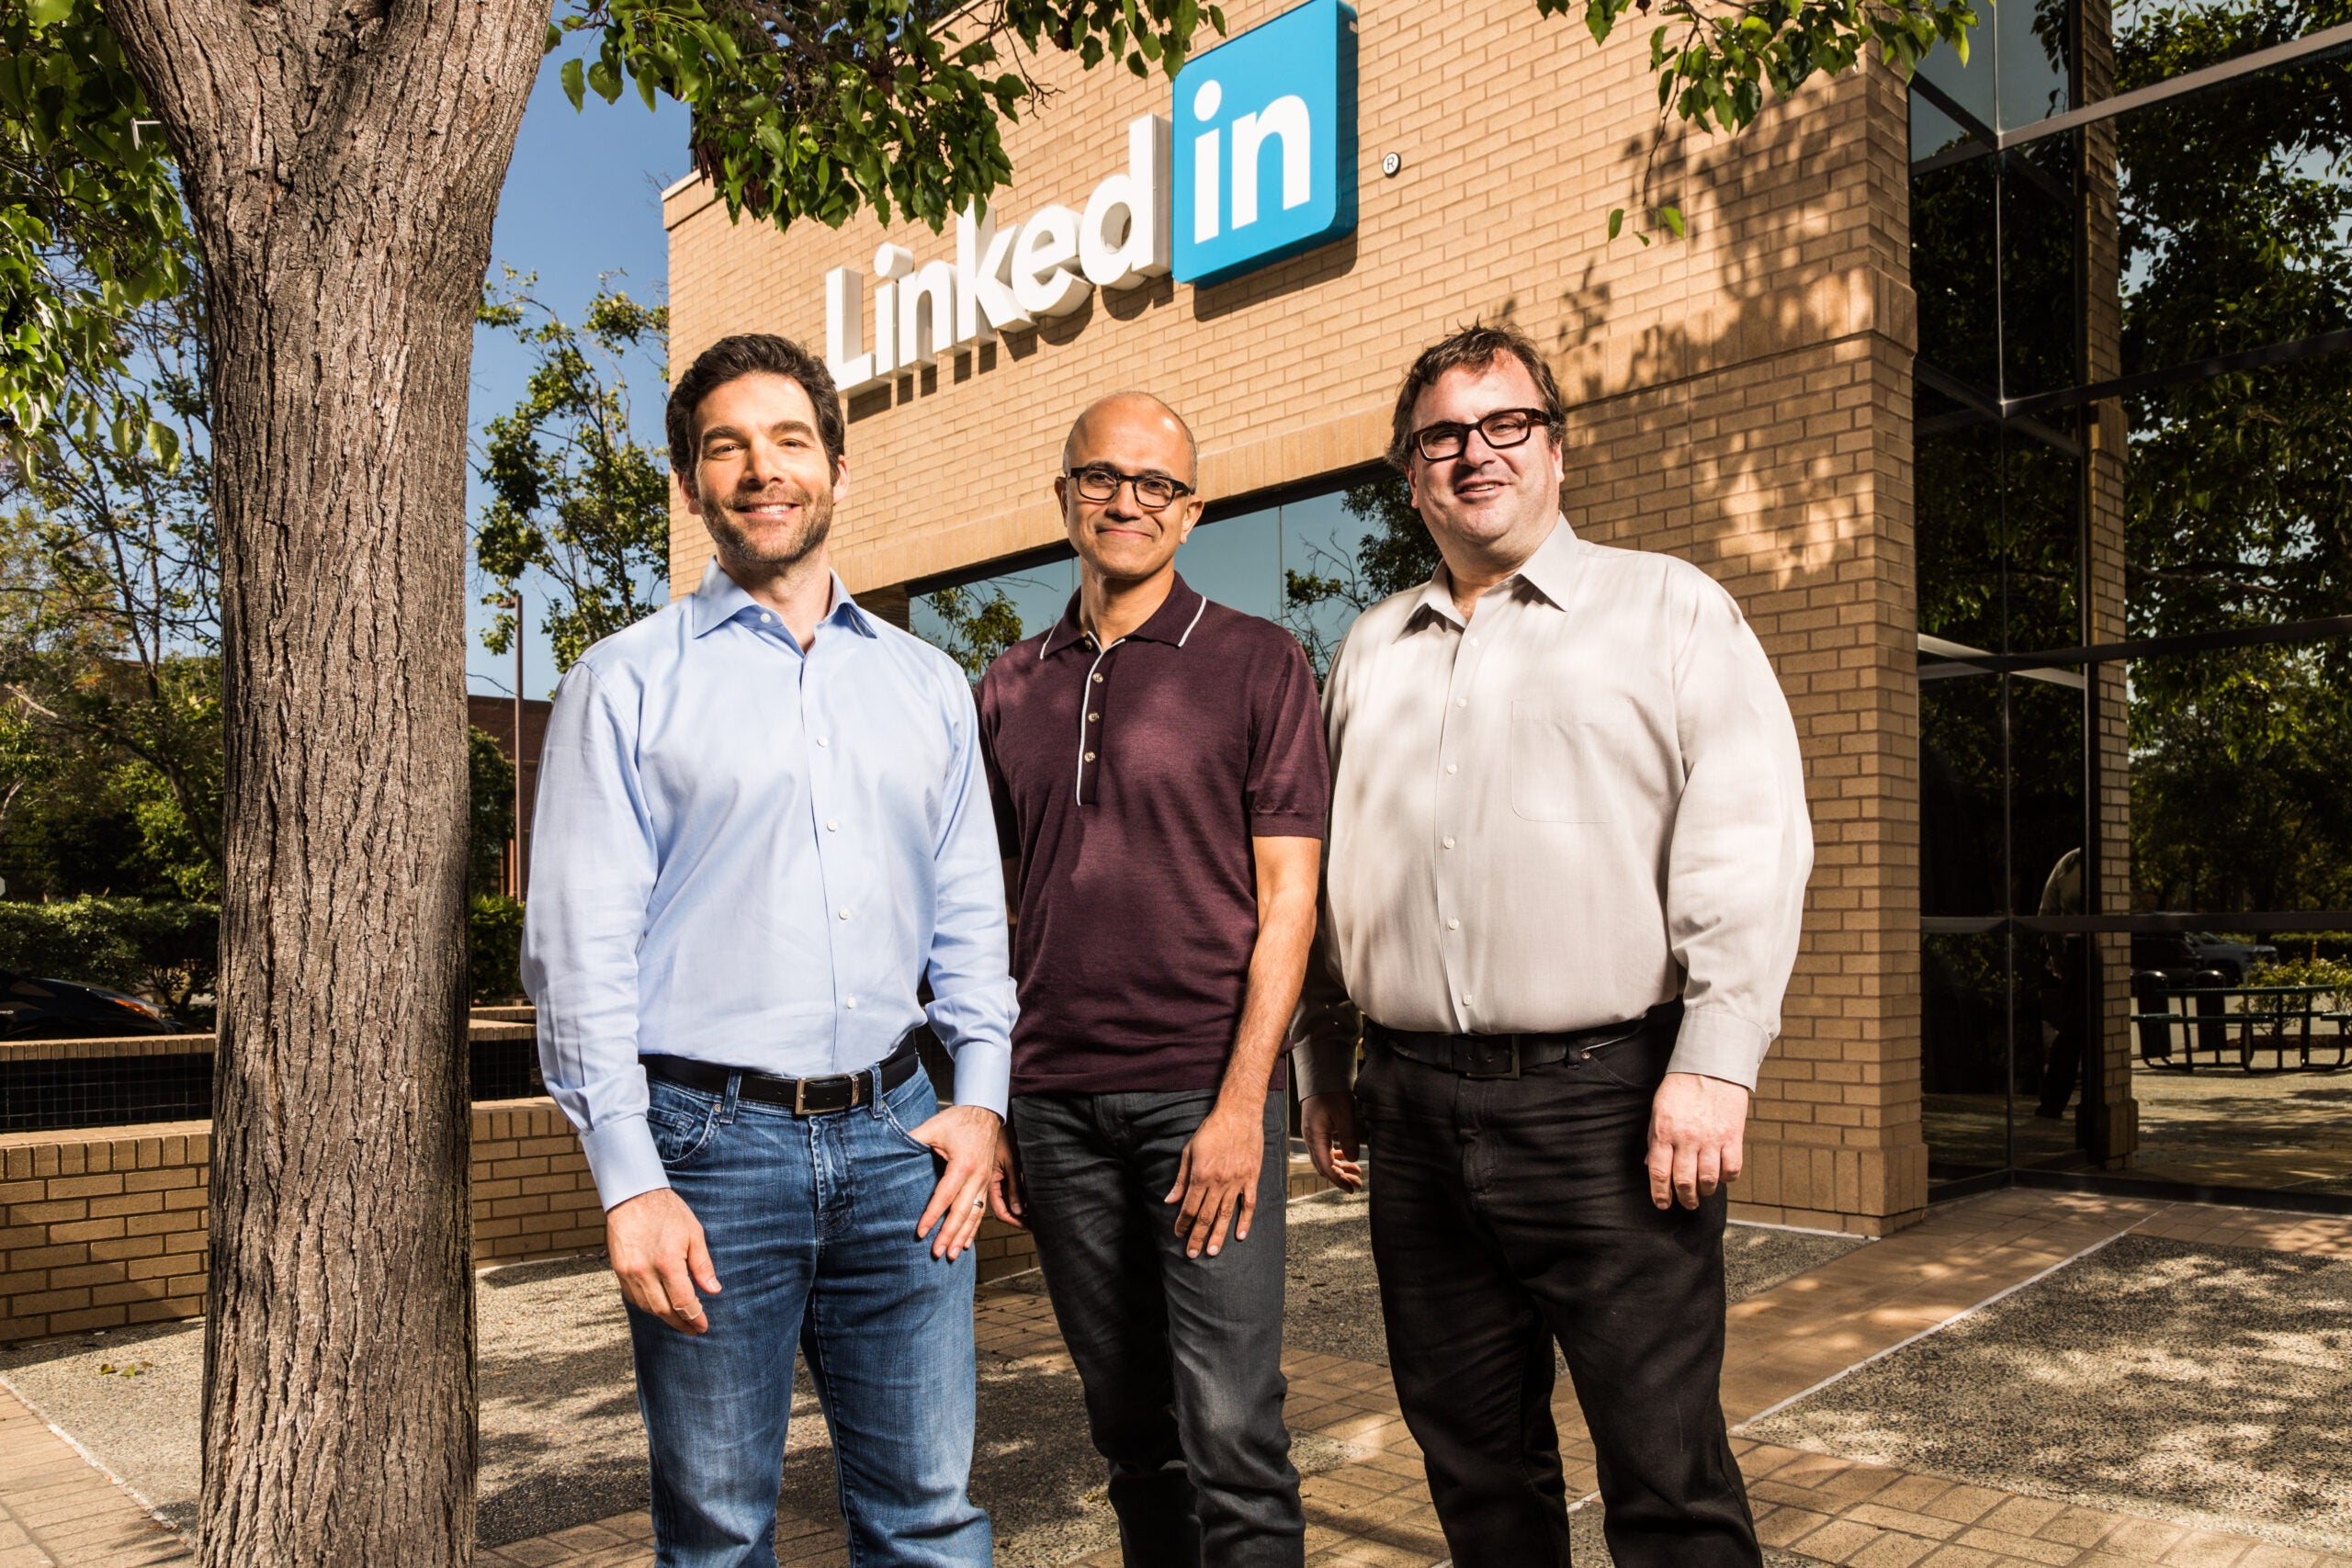 Microsoft Would Like To Connect With You on LinkedIn